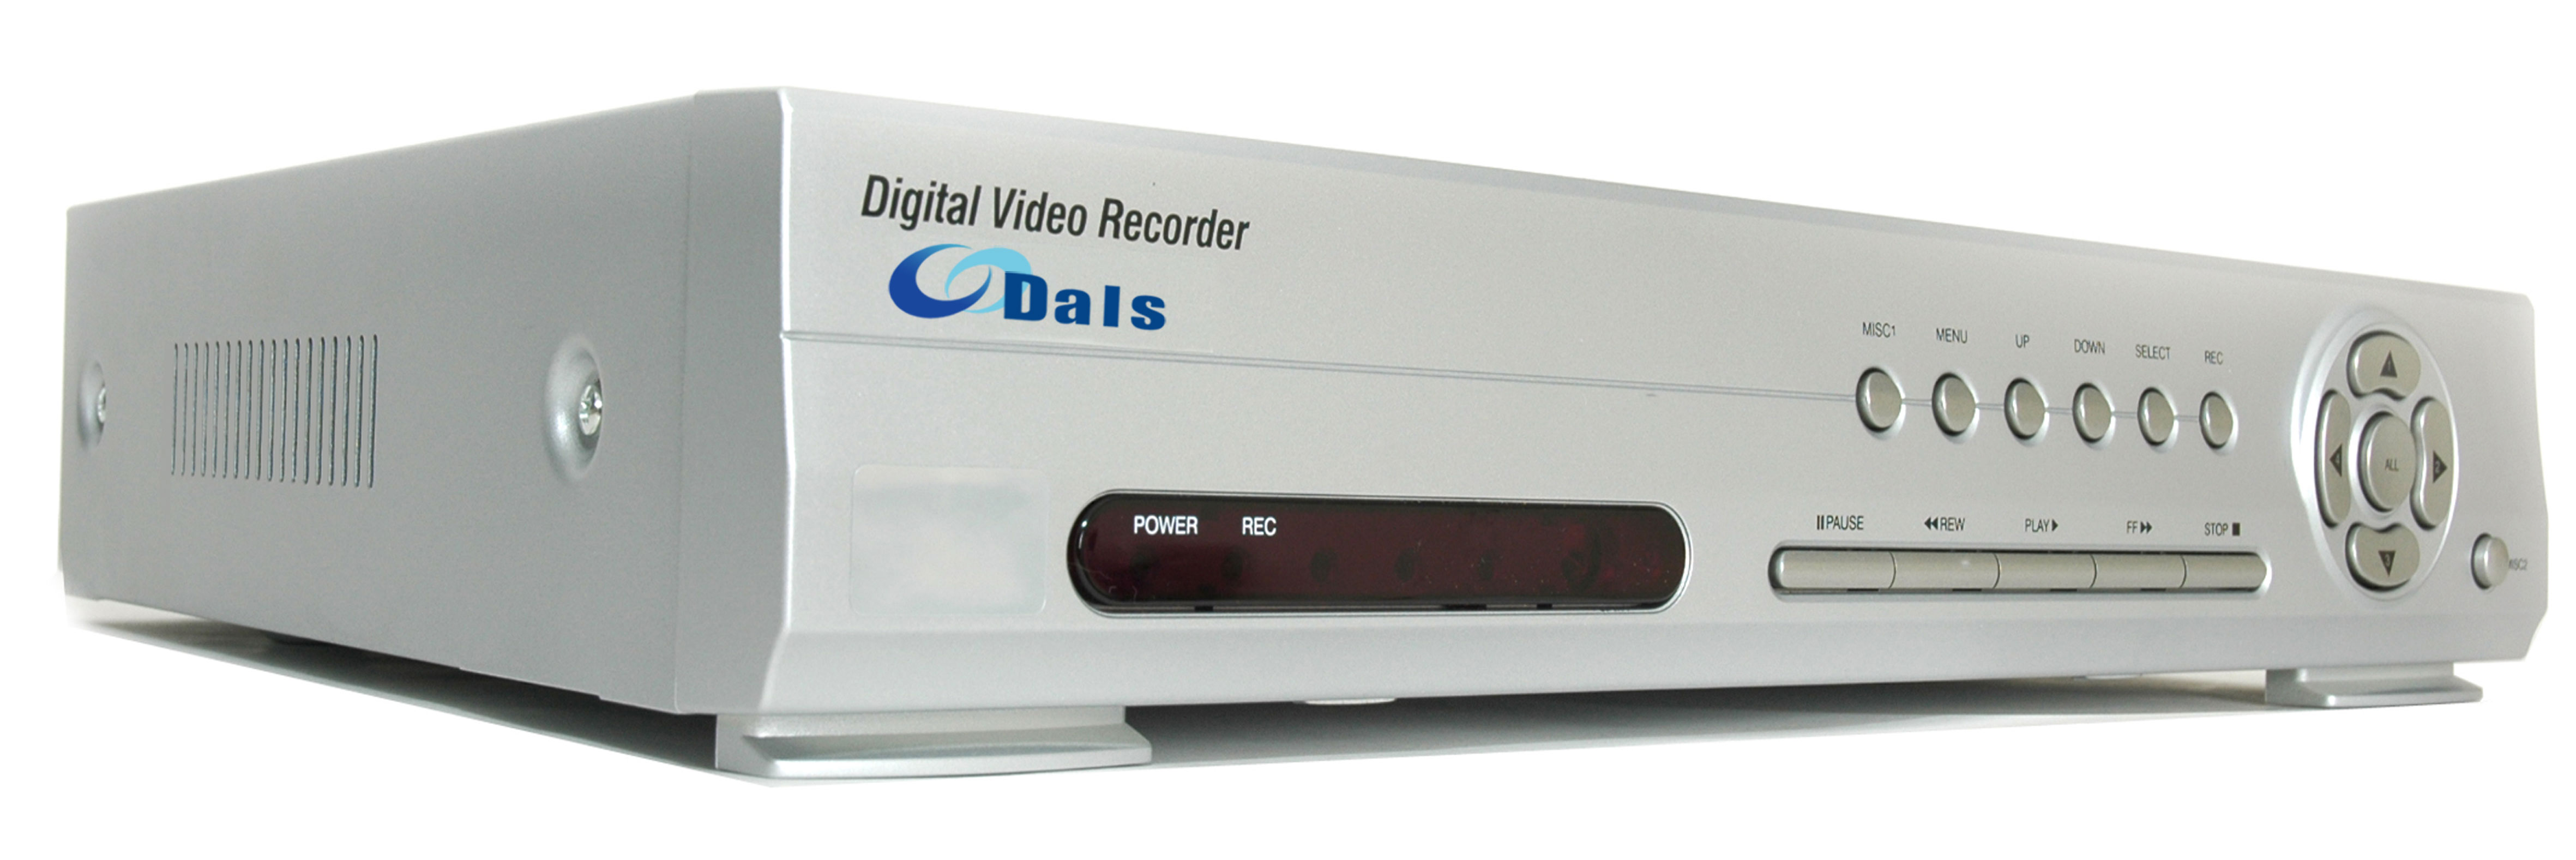 DSDVR-8200MN (Digital Video Recorder)